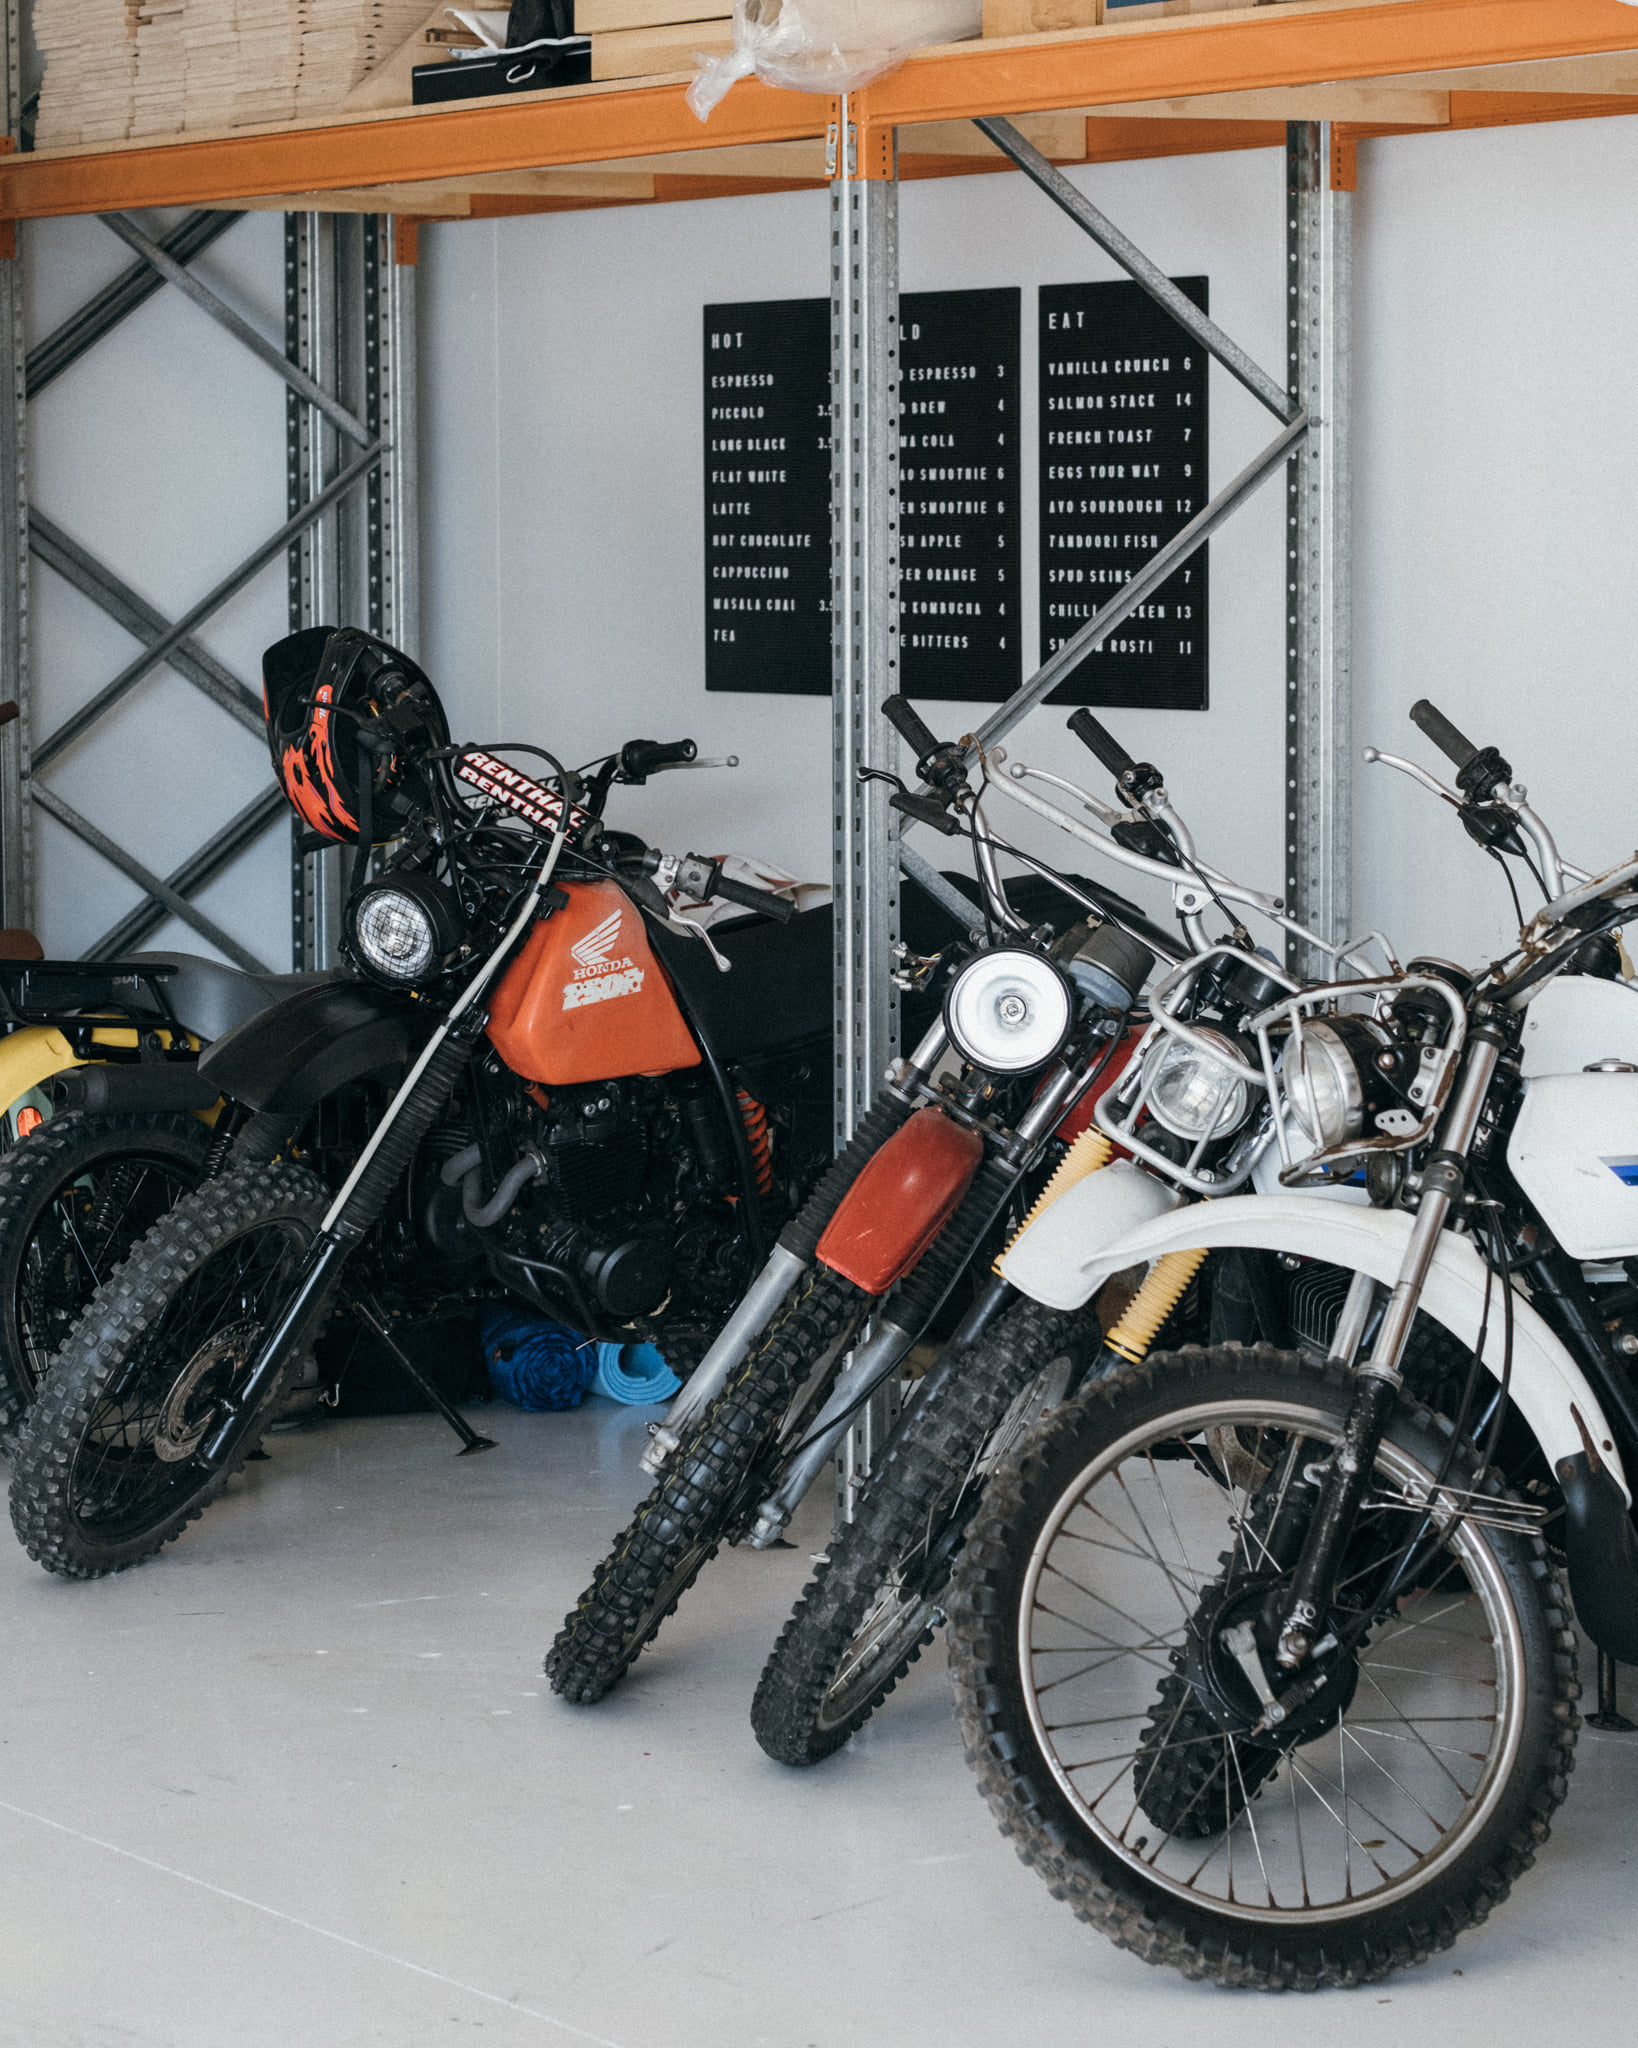 George & Willy Motorcycles